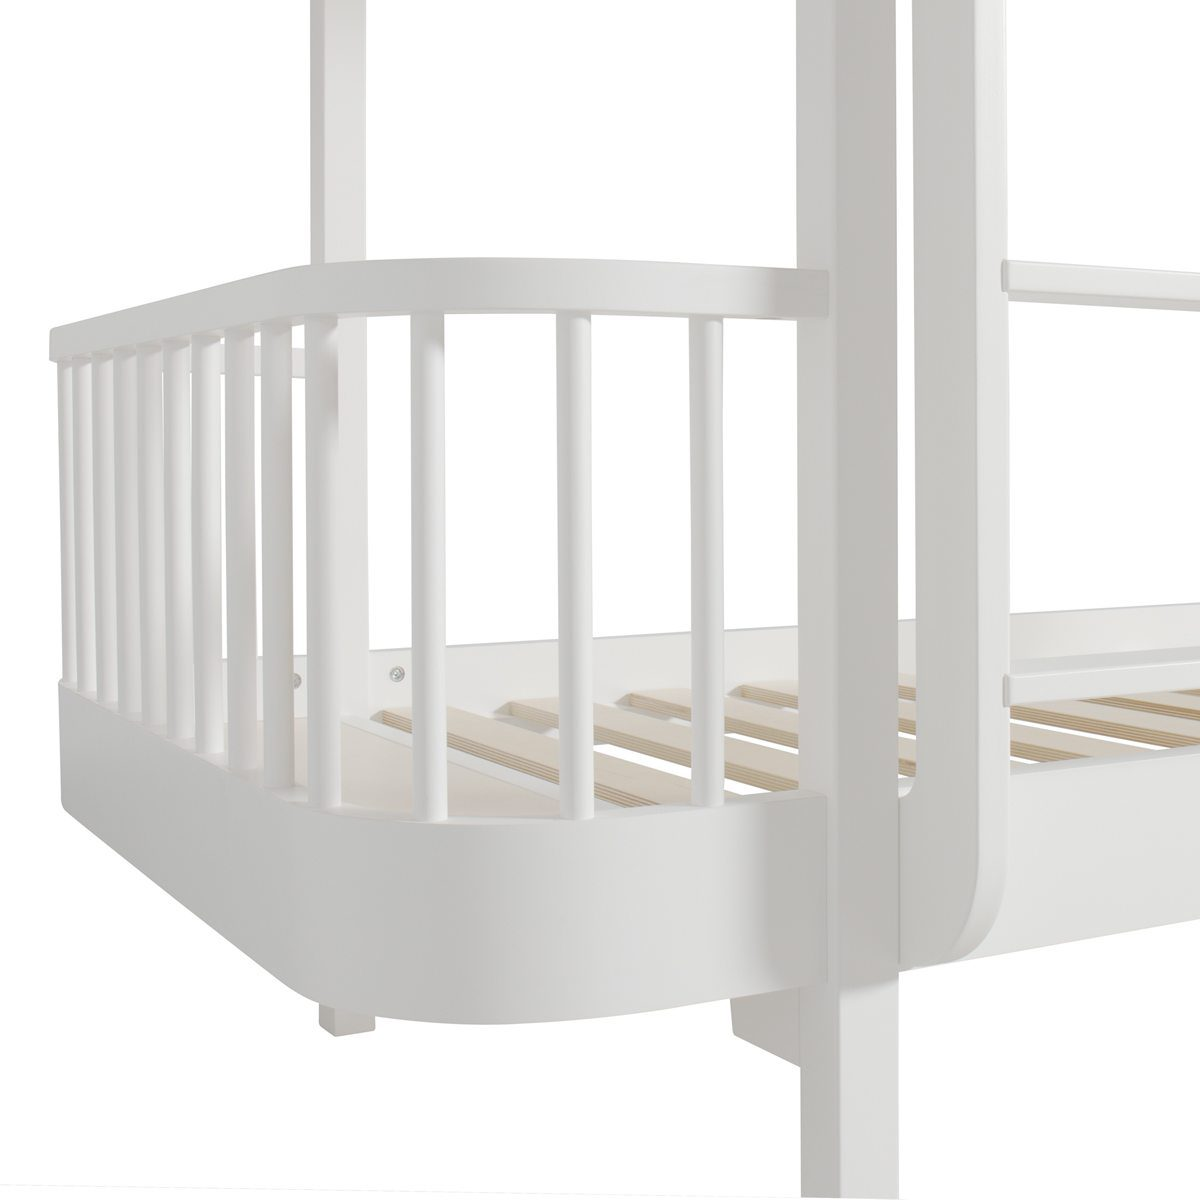 Oliver Furniture Stapelbed white Wood detail